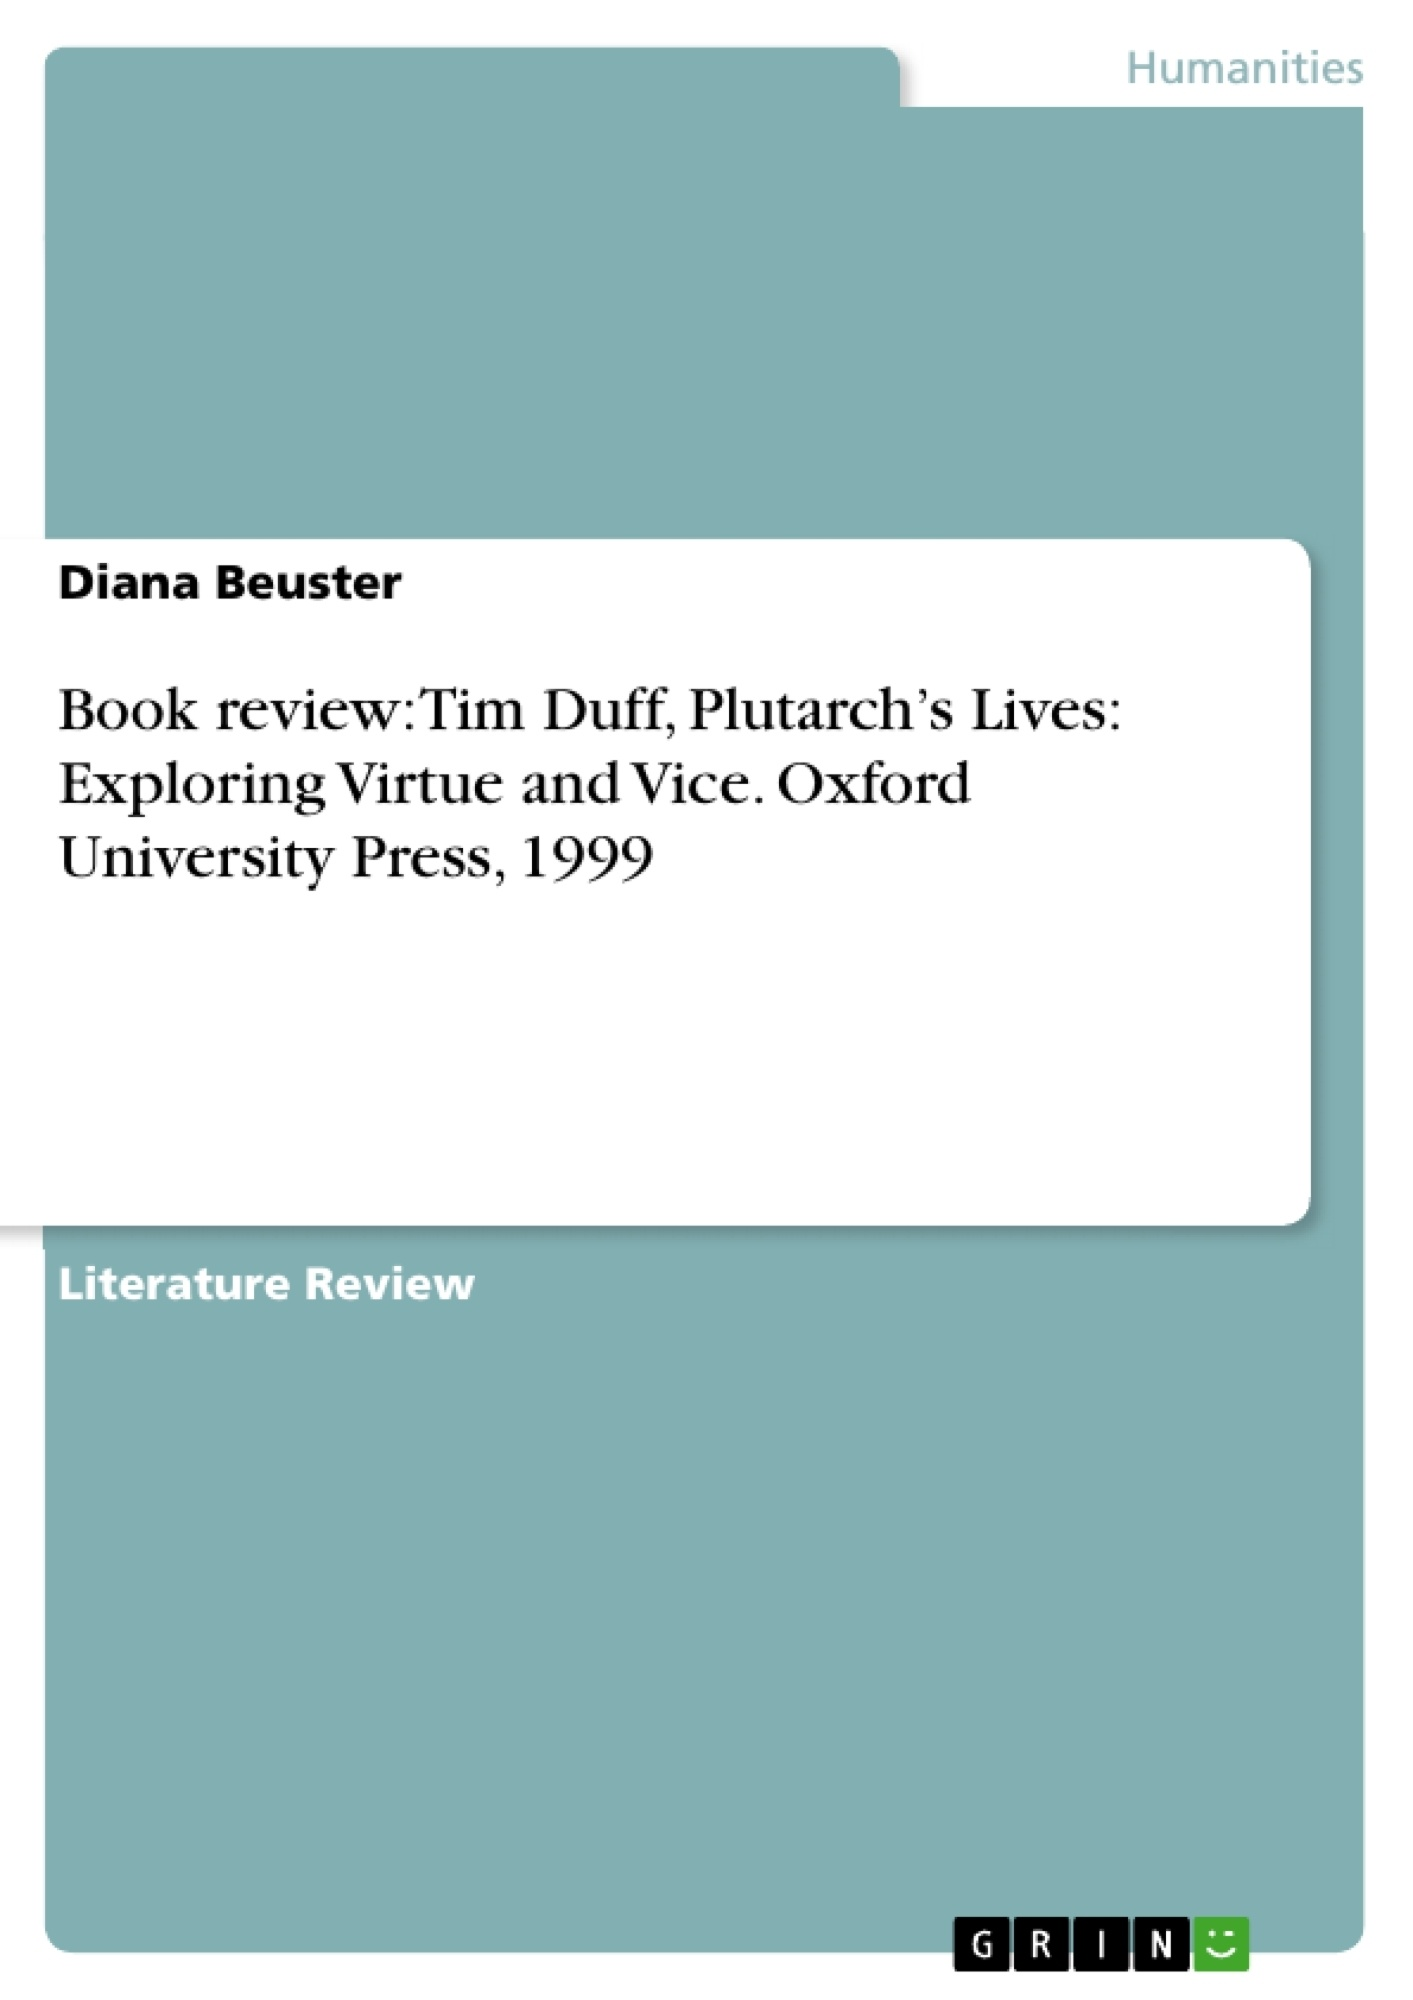 Title: Book review: Tim Duff, Plutarch's Lives: Exploring Virtue and Vice. Oxford University Press, 1999